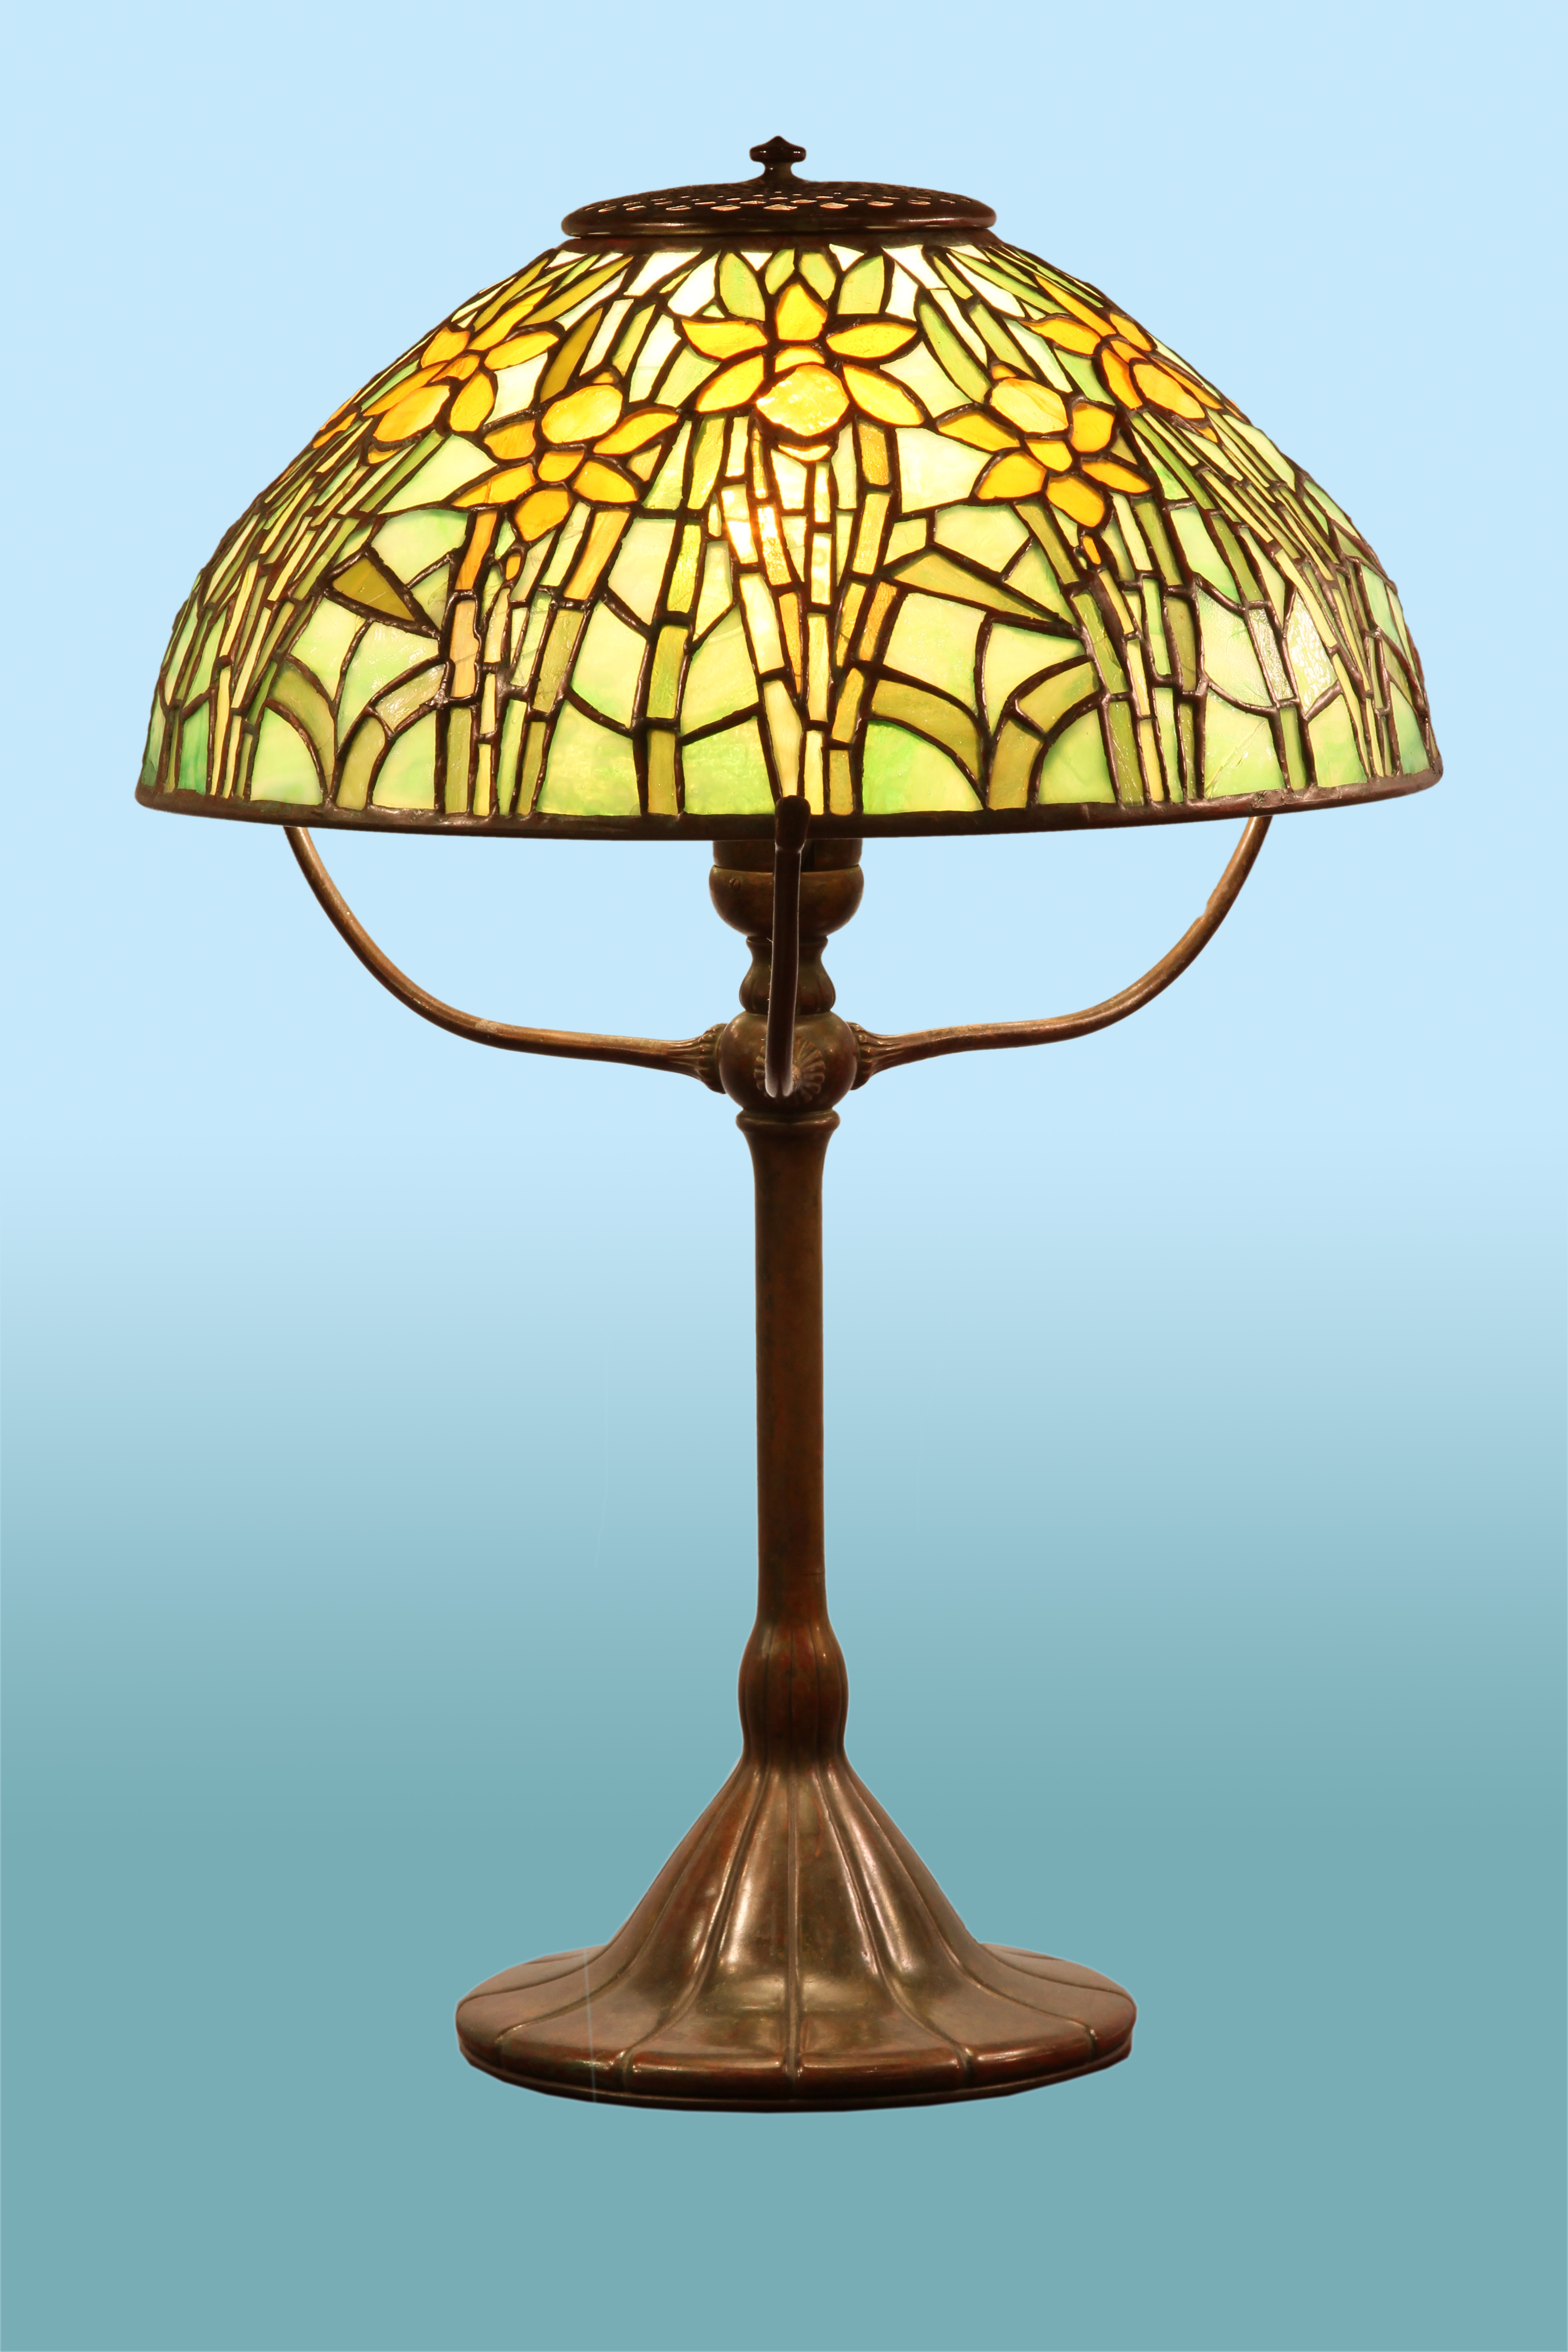 tiffany daffodil table lamp for sale classifieds. Black Bedroom Furniture Sets. Home Design Ideas